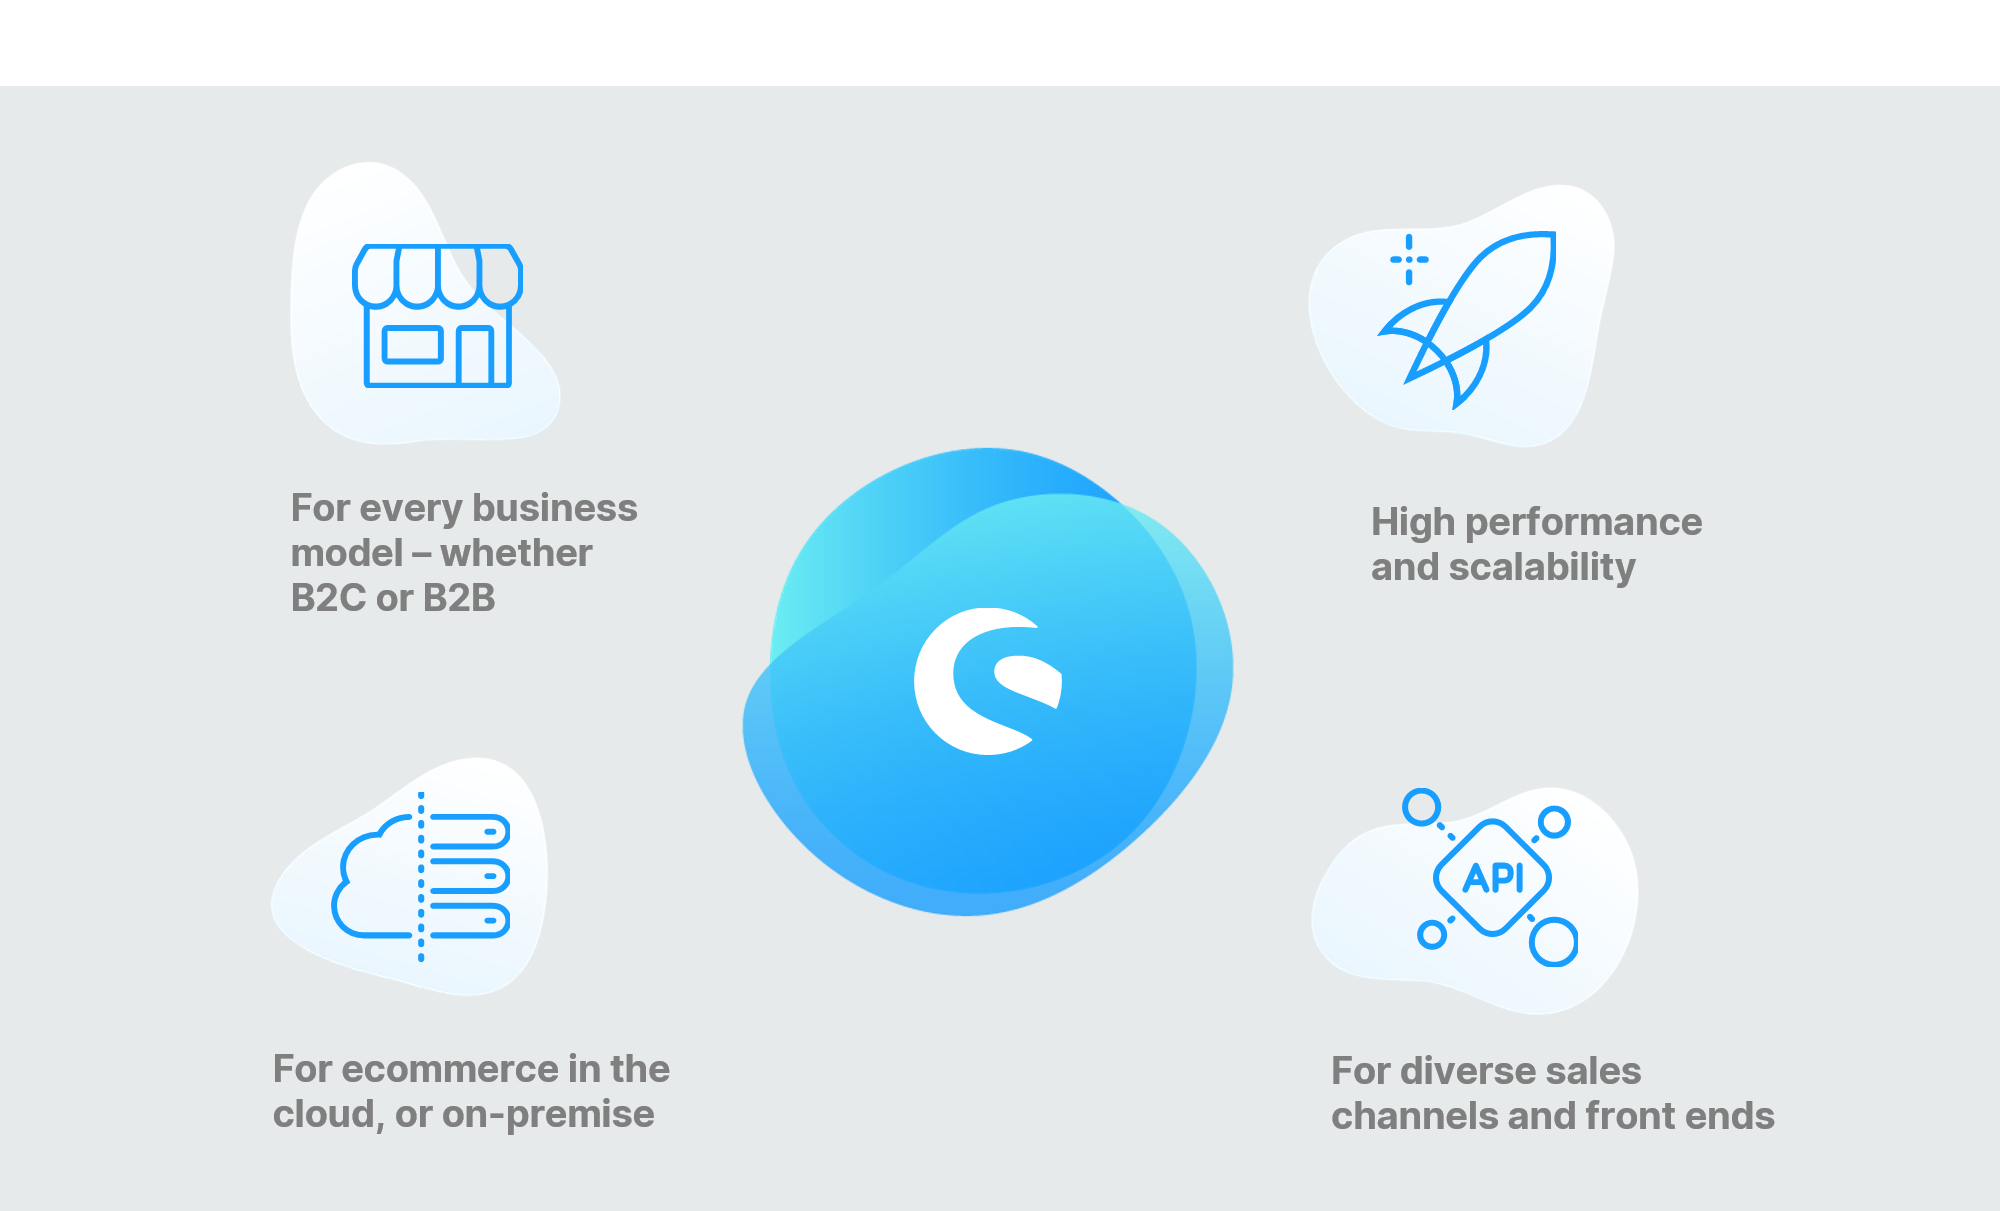 Shopware benefits 2 image